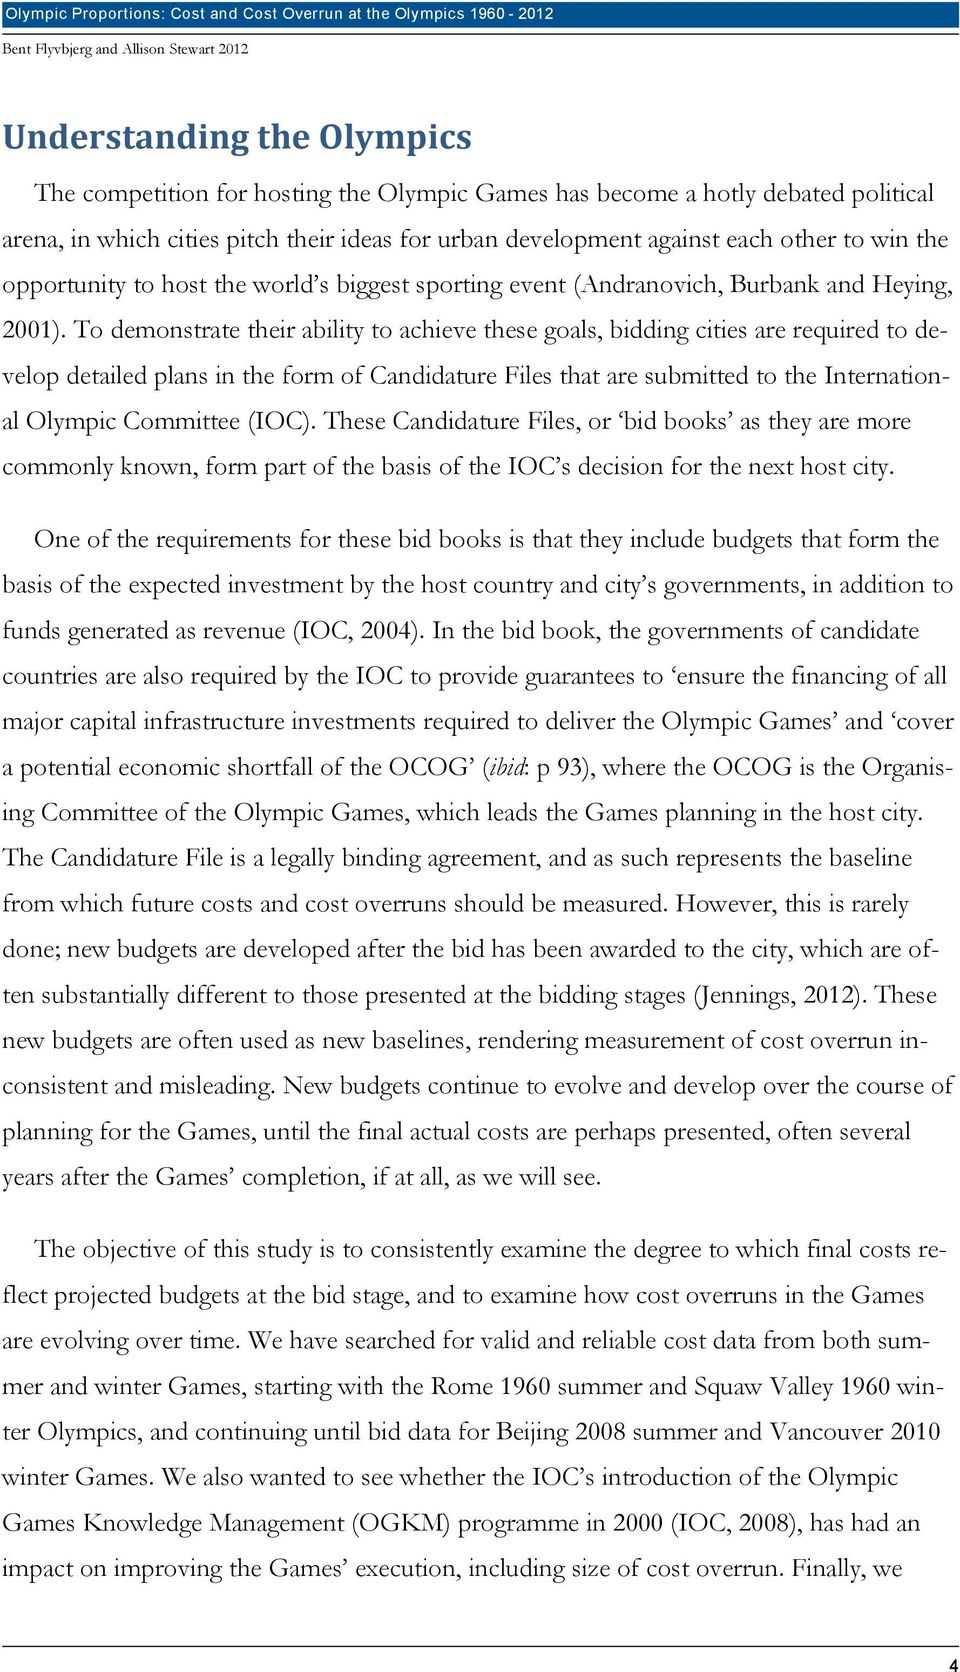 To demonstrate their ability to achieve these goals, bidding cities are required to develop detailed plans in the form of Candidature Files that are submitted to the International Olympic Committee